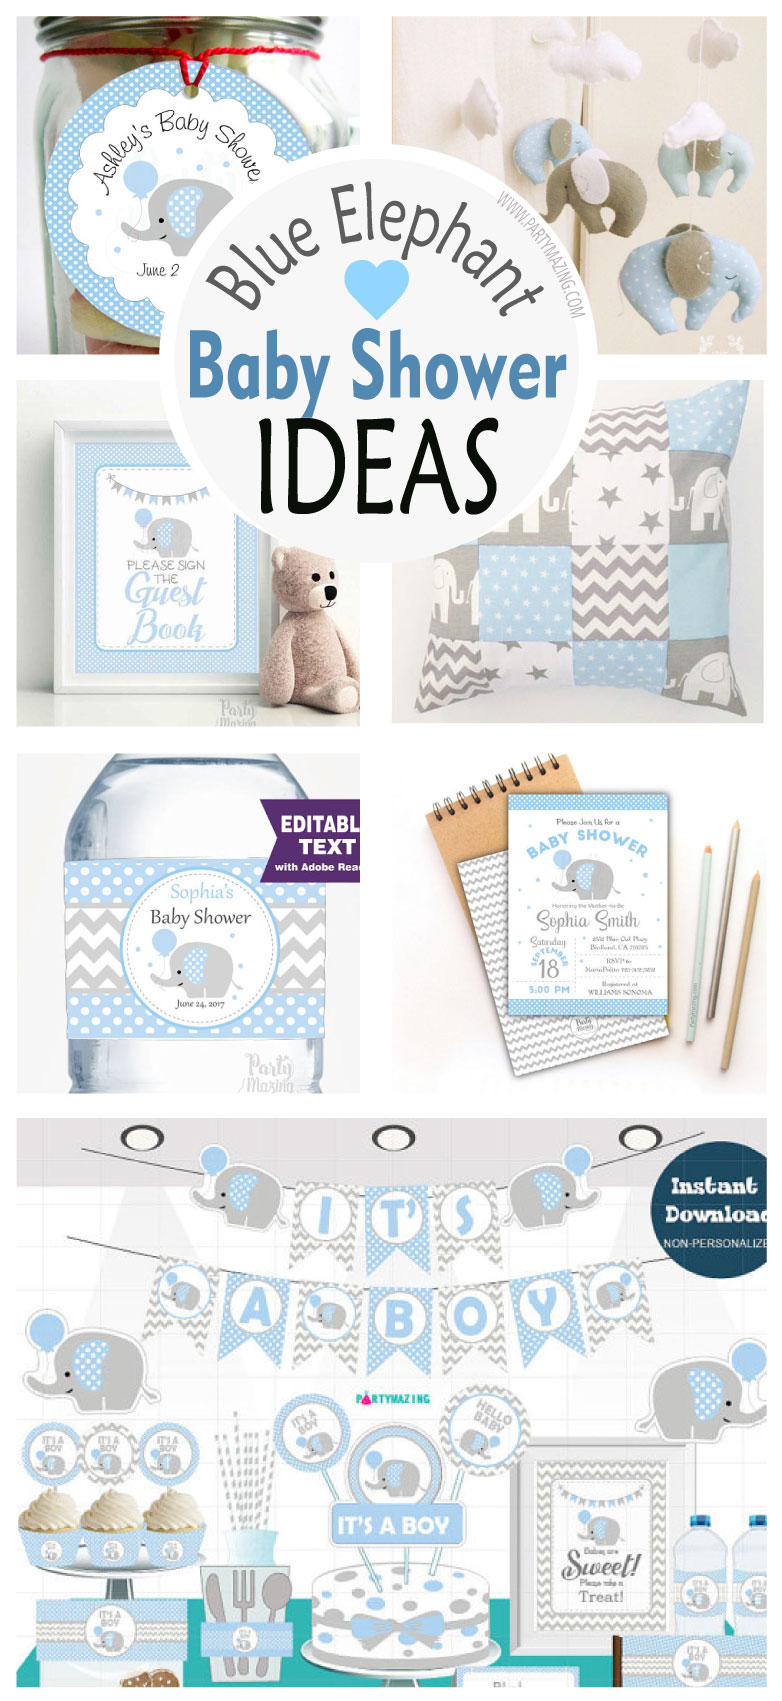 Prepare A Cute And Delicate Baby Shower Blue Gray Elephant Surprise Your Guests There Is On The Way This Great Joy But Also Comes